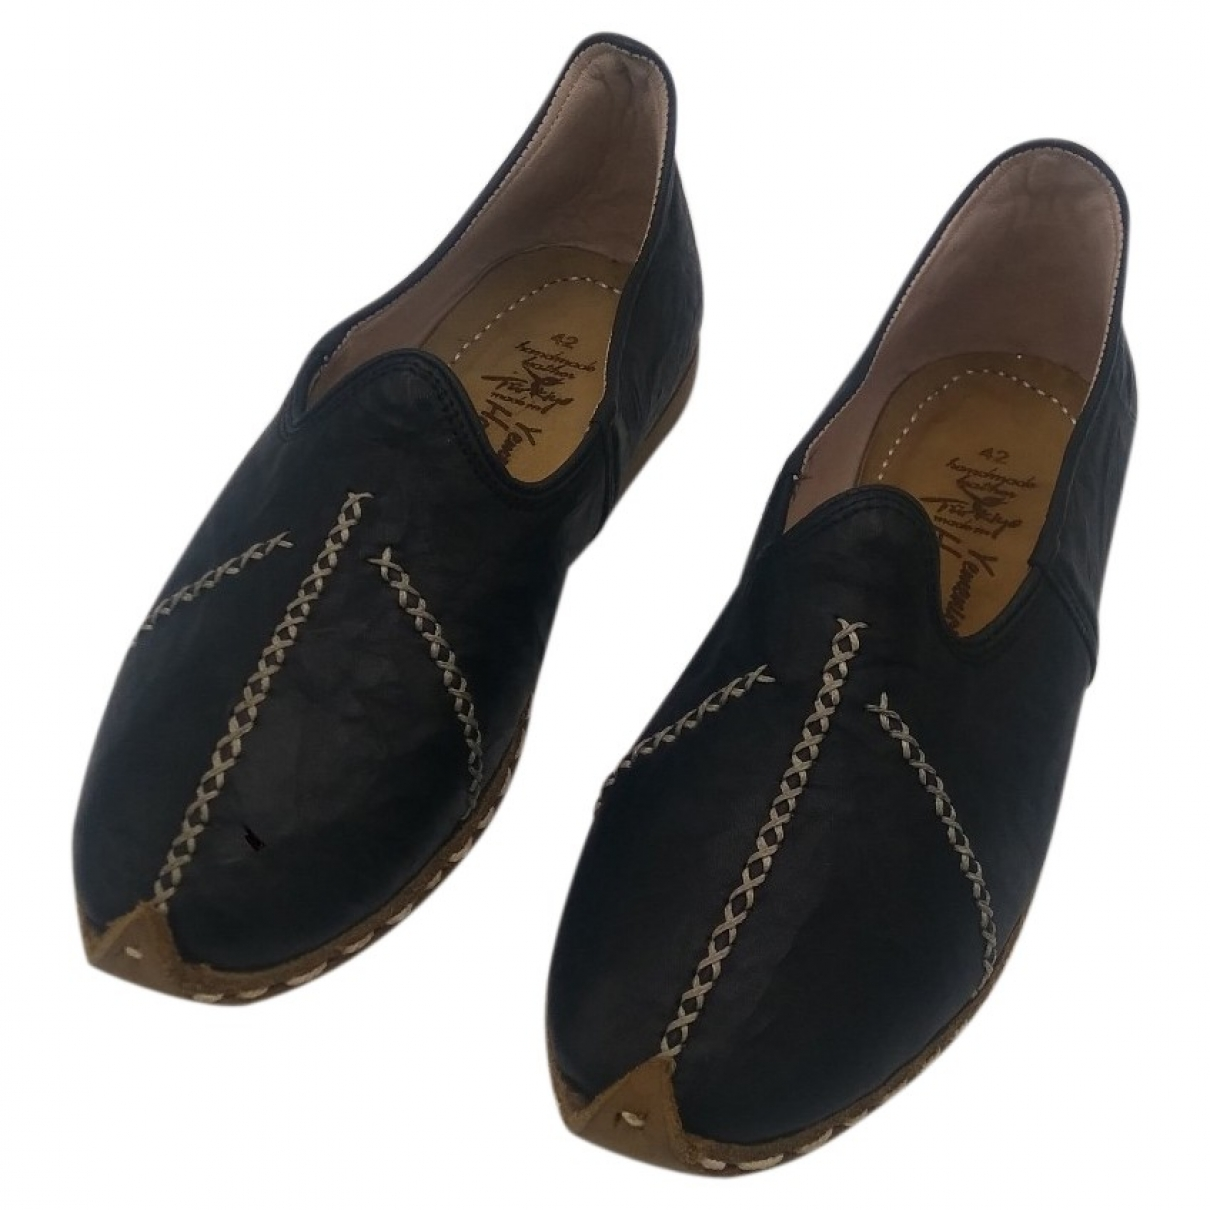 & Stories \N Black Leather Flats for Women 10 US